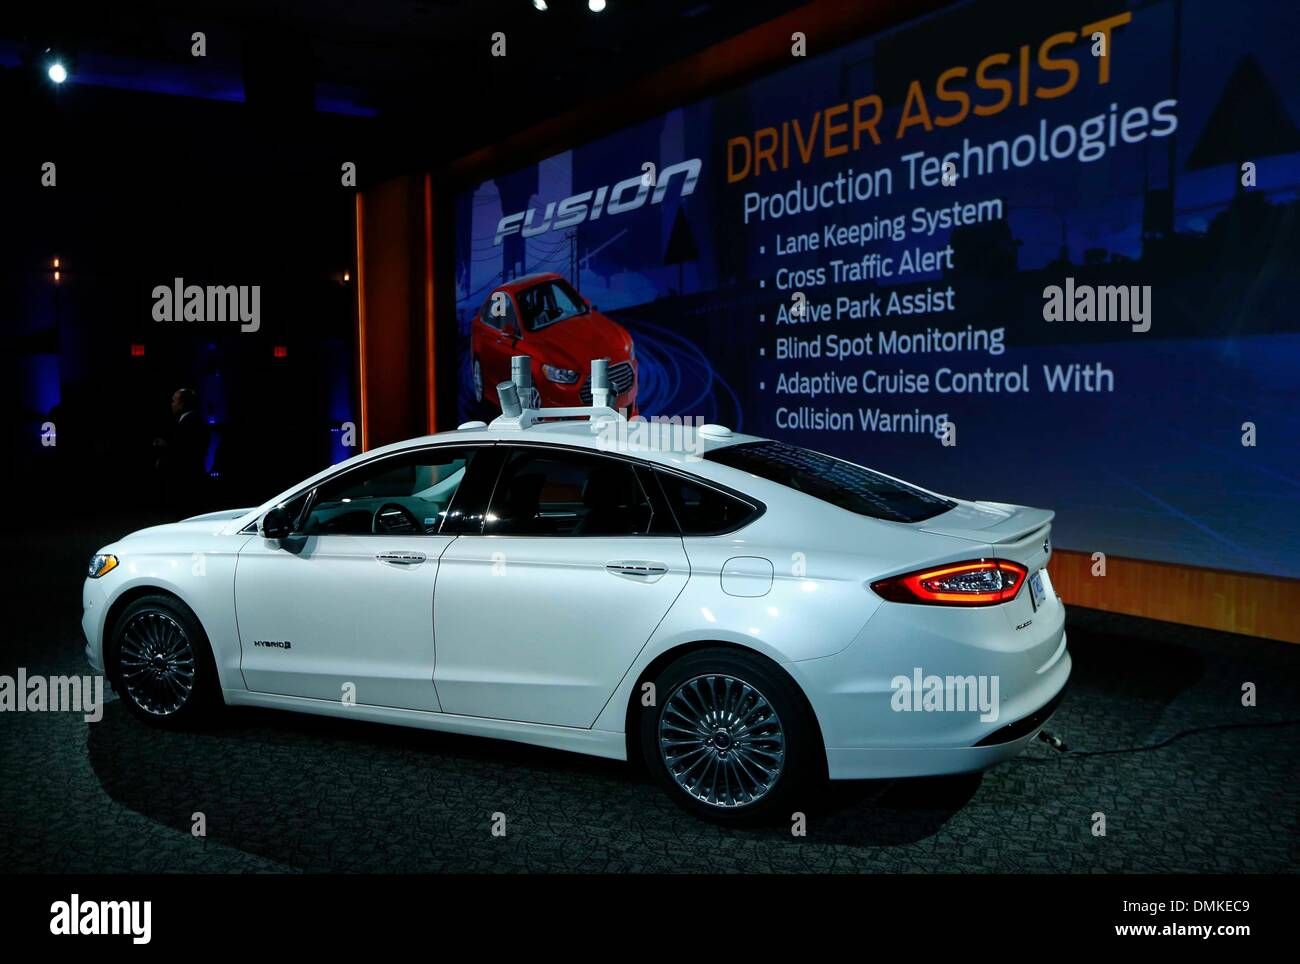 Dearborn michigan usa 12th dec 2013 ford motor company unveils ford motor company unveils automated ford fusion hybrid research vehicle to test and advance its blueprint for mobility which envisions a future of malvernweather Gallery